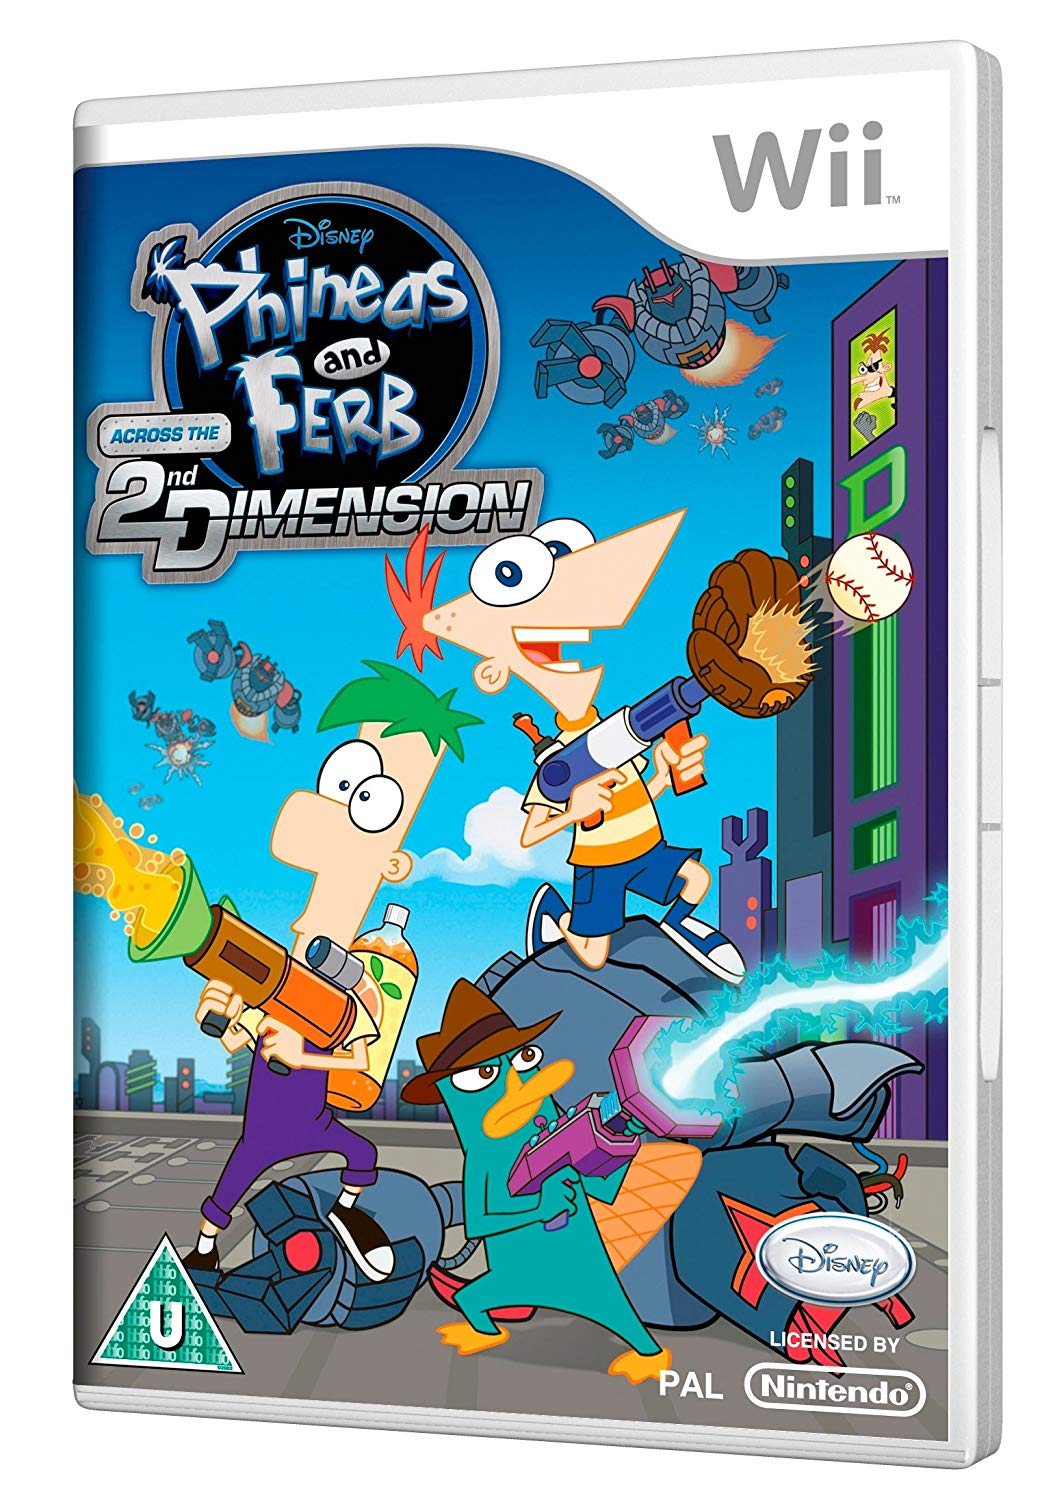 Disney Phineas and Ferb Across the 2nd Dimension